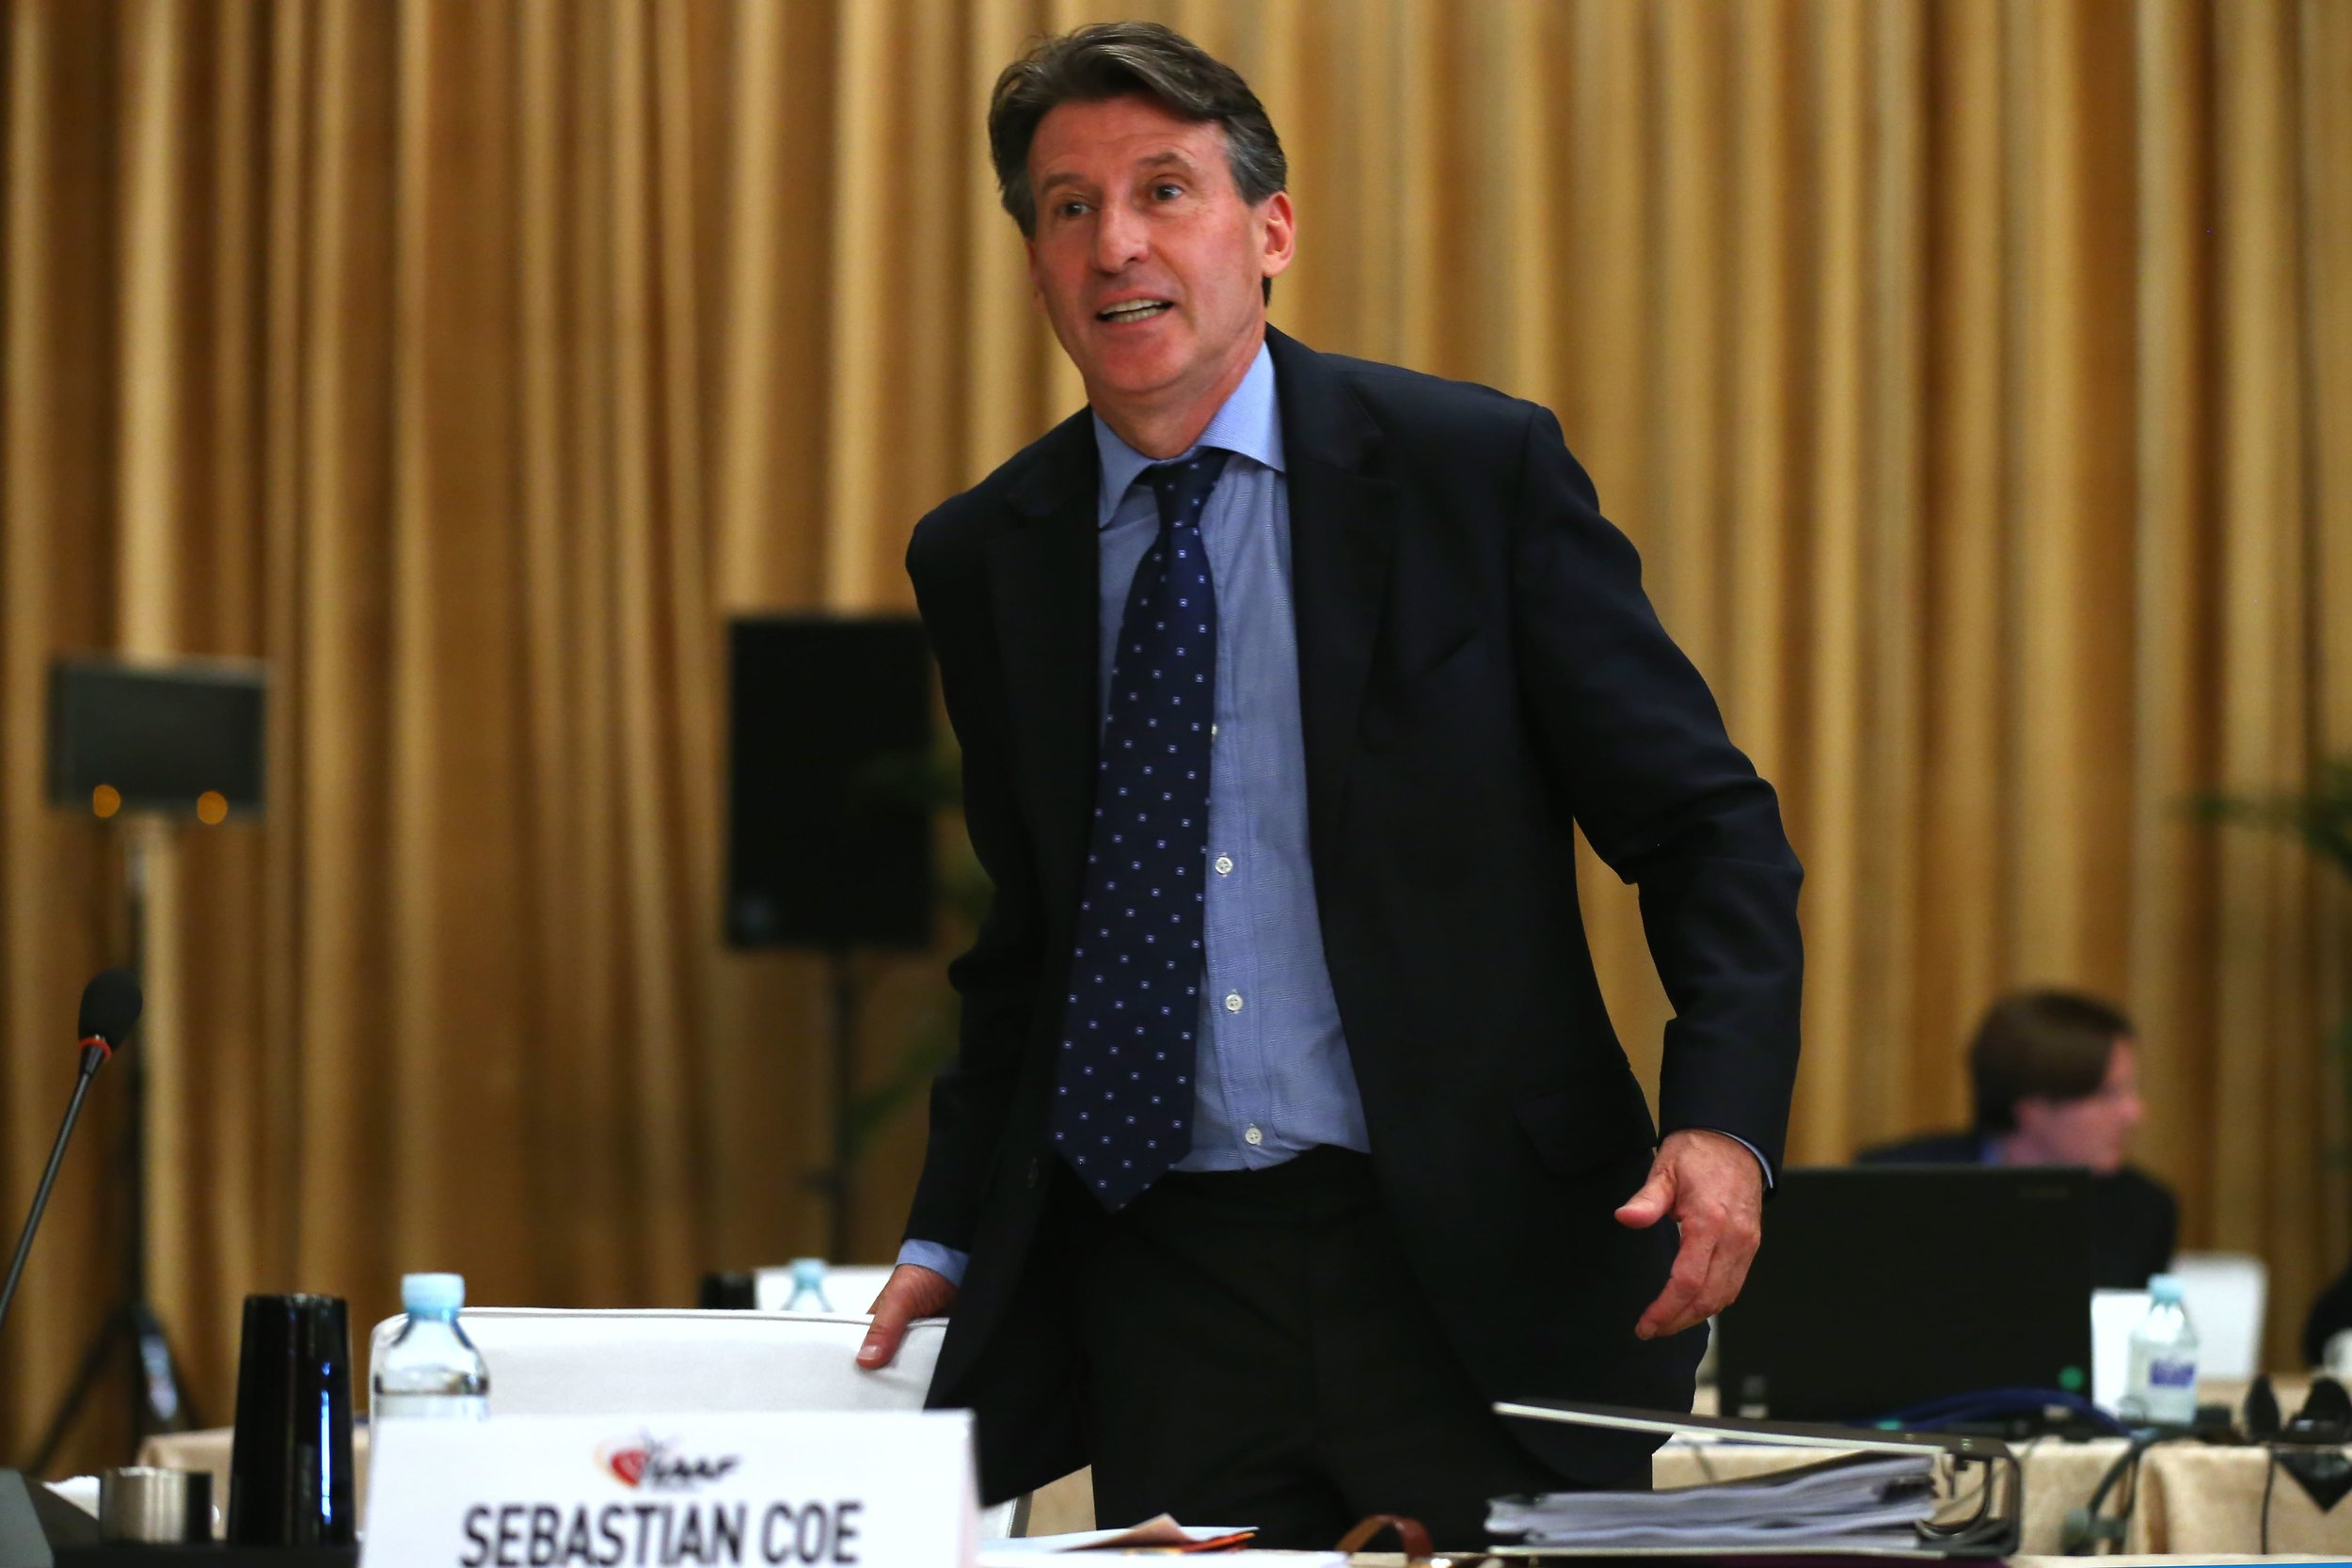 Coe at the IAAF congress // Getty Images